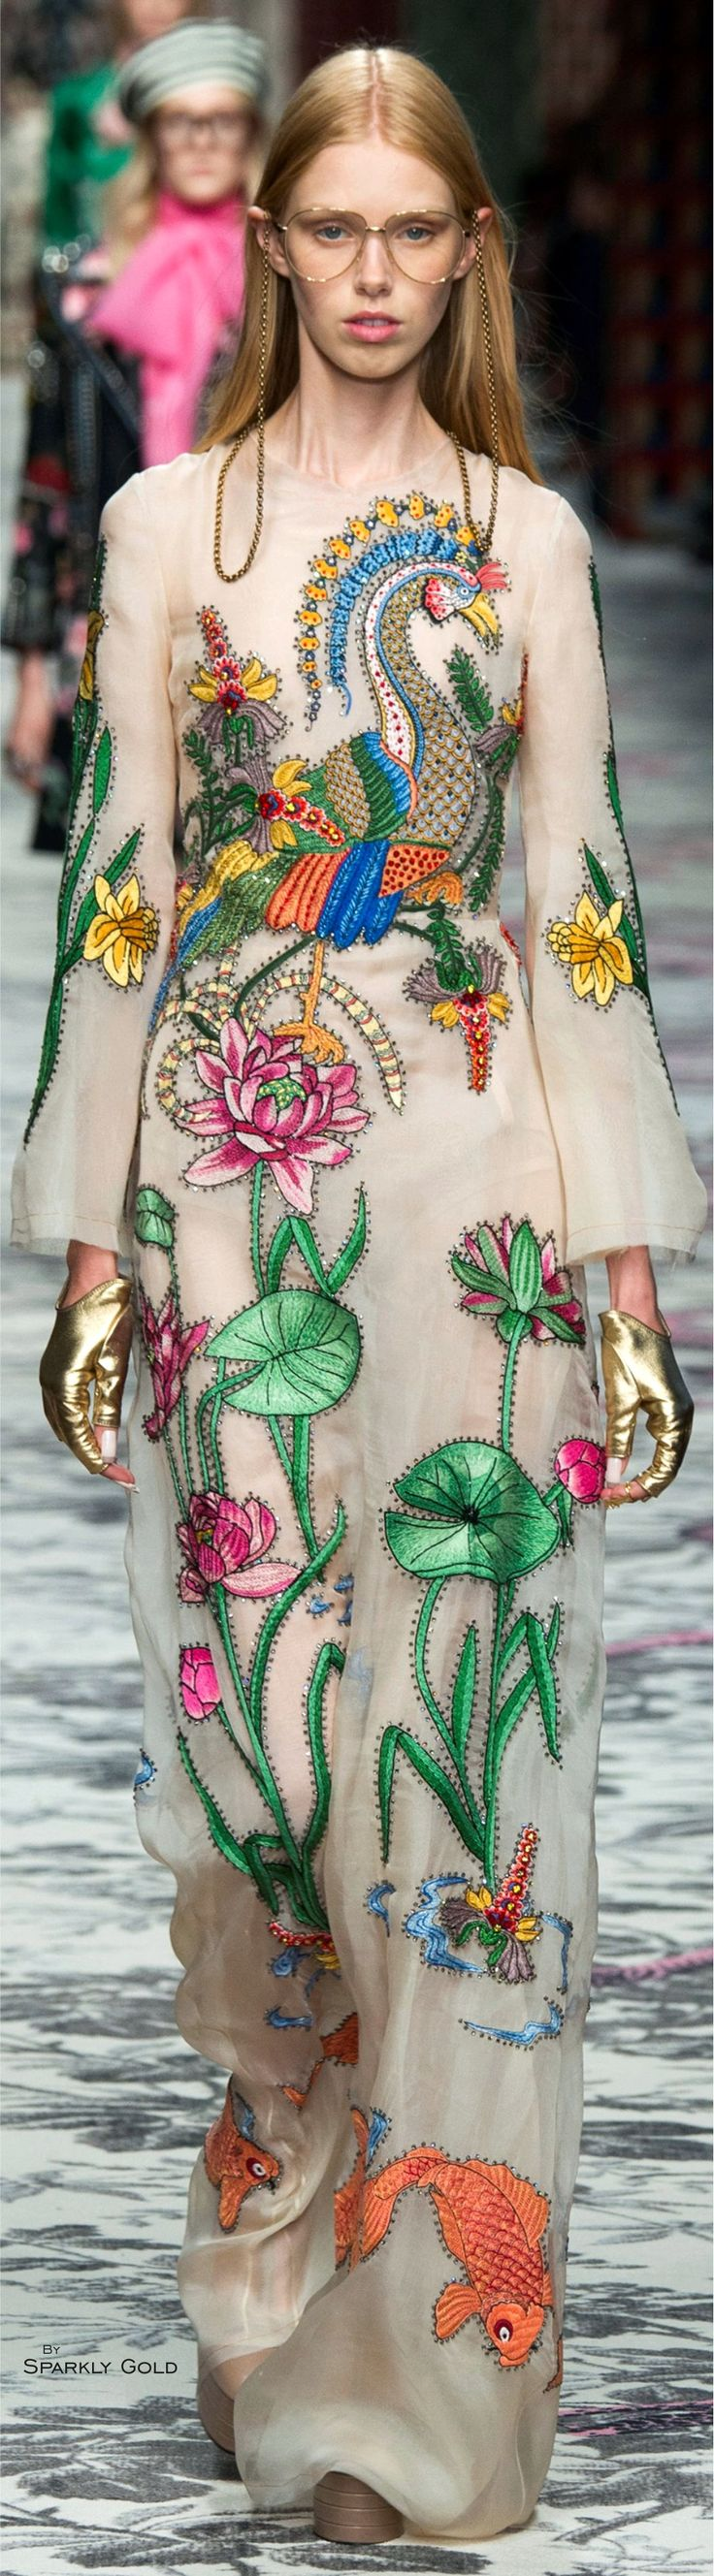 //Gucci Spring 2016 #fashion #spring